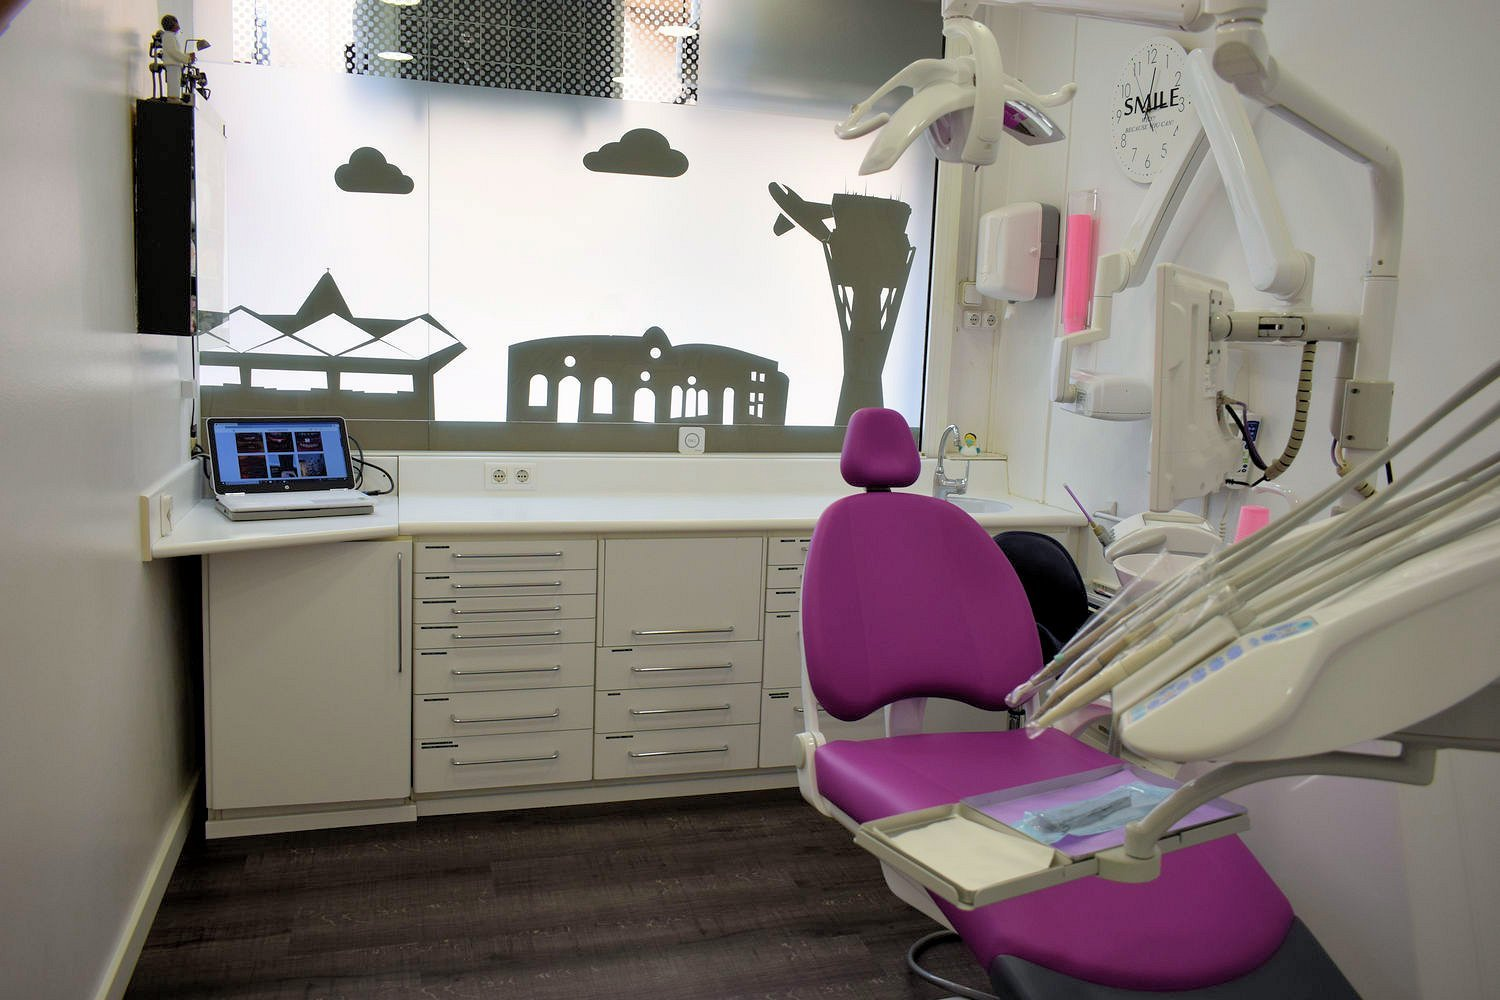 Centre dental dra Casaus 15